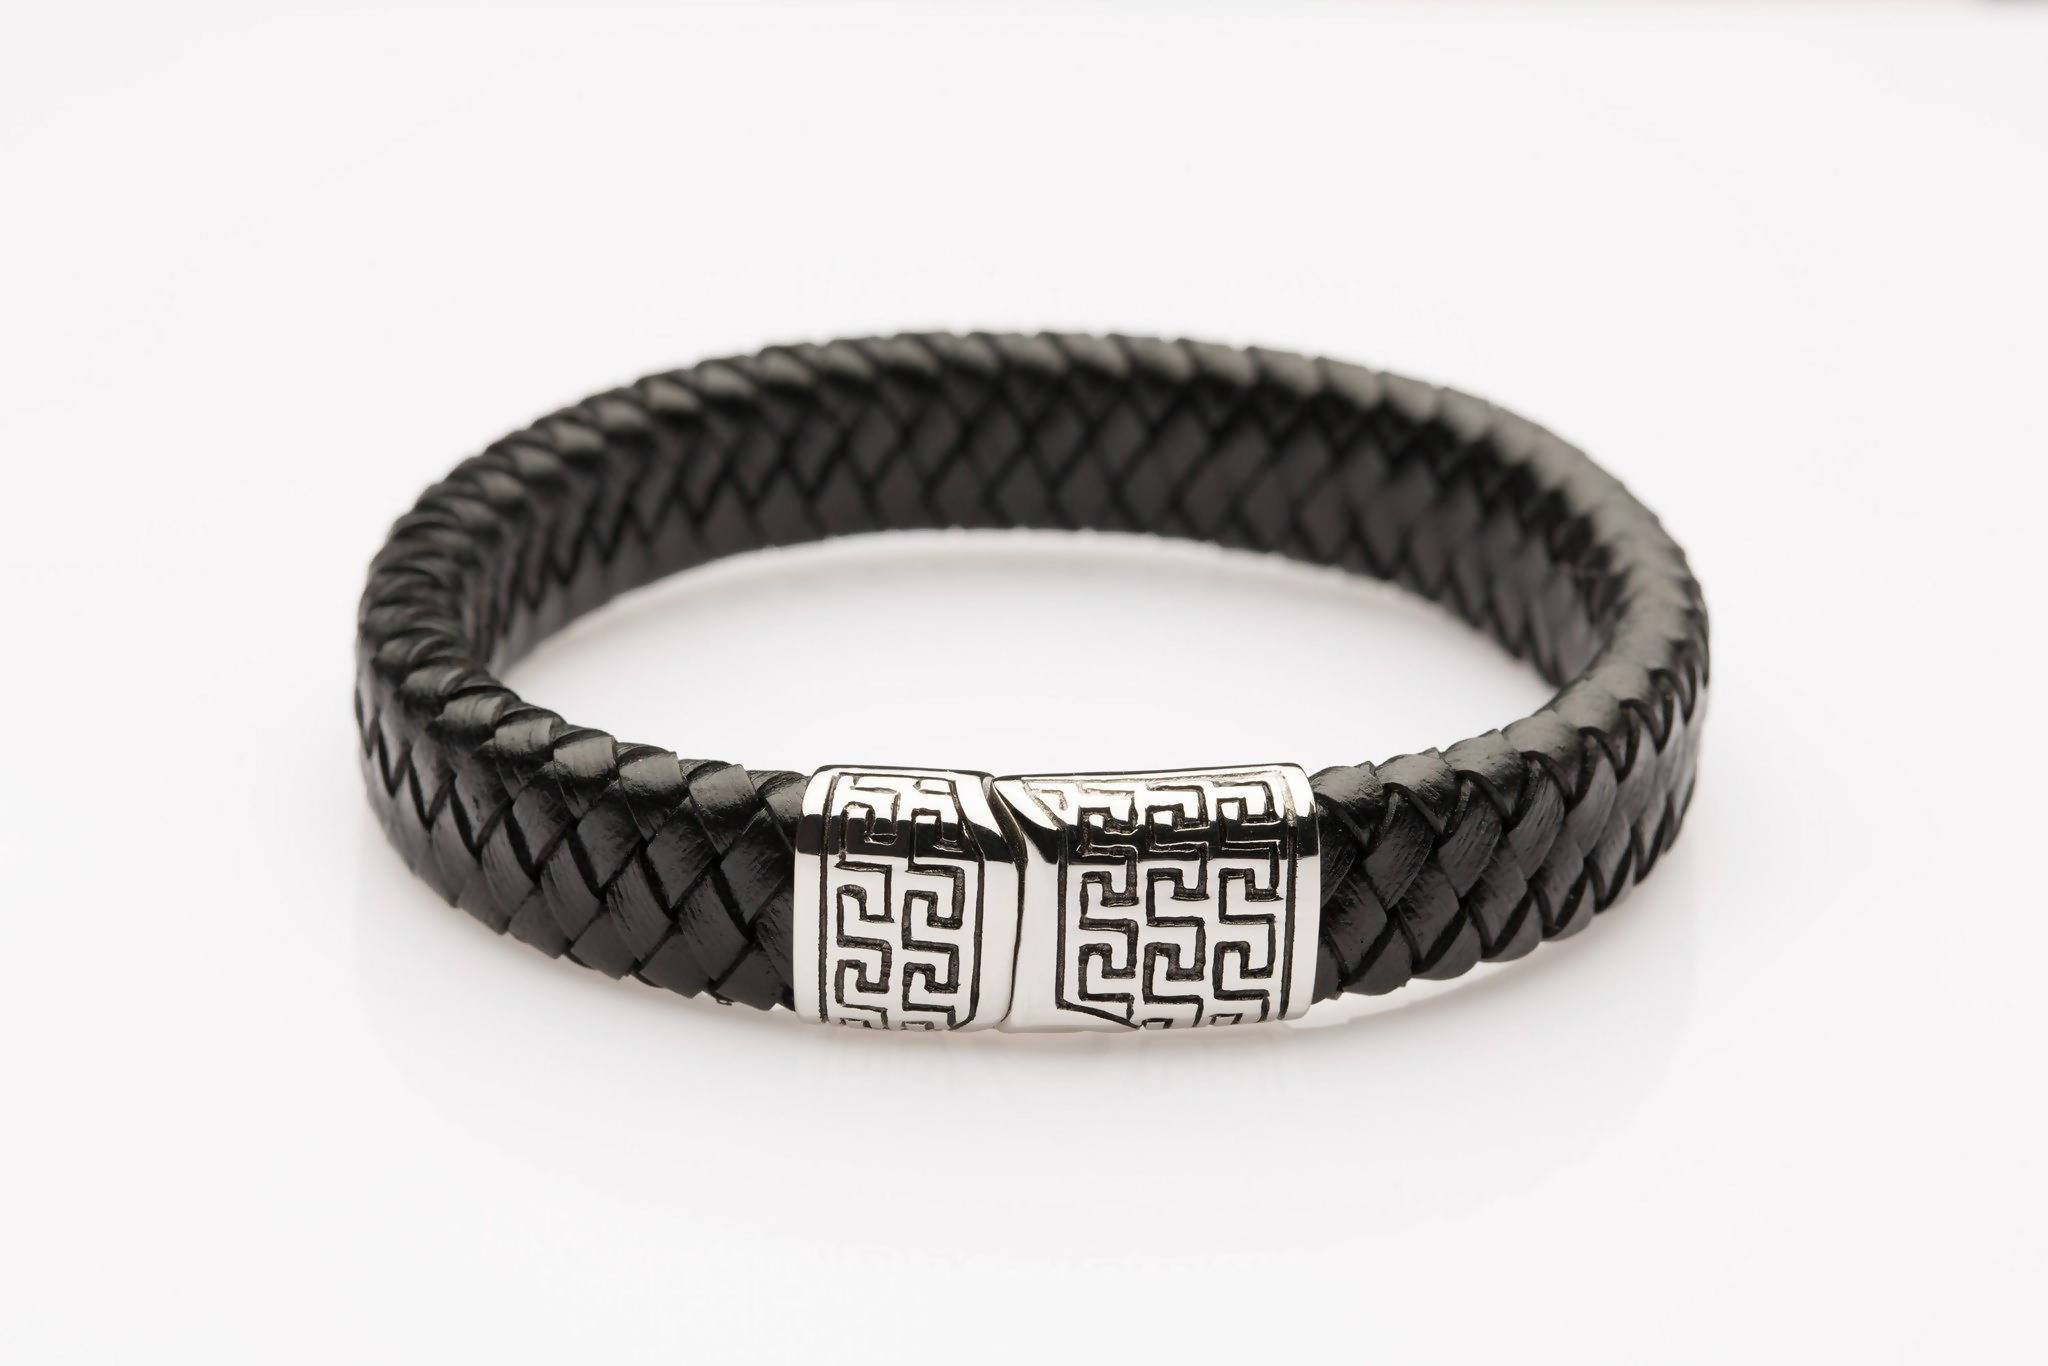 J. By Jee Tribal Clasp Bracelet - Men's Bracelets - J By Jee - Naiise